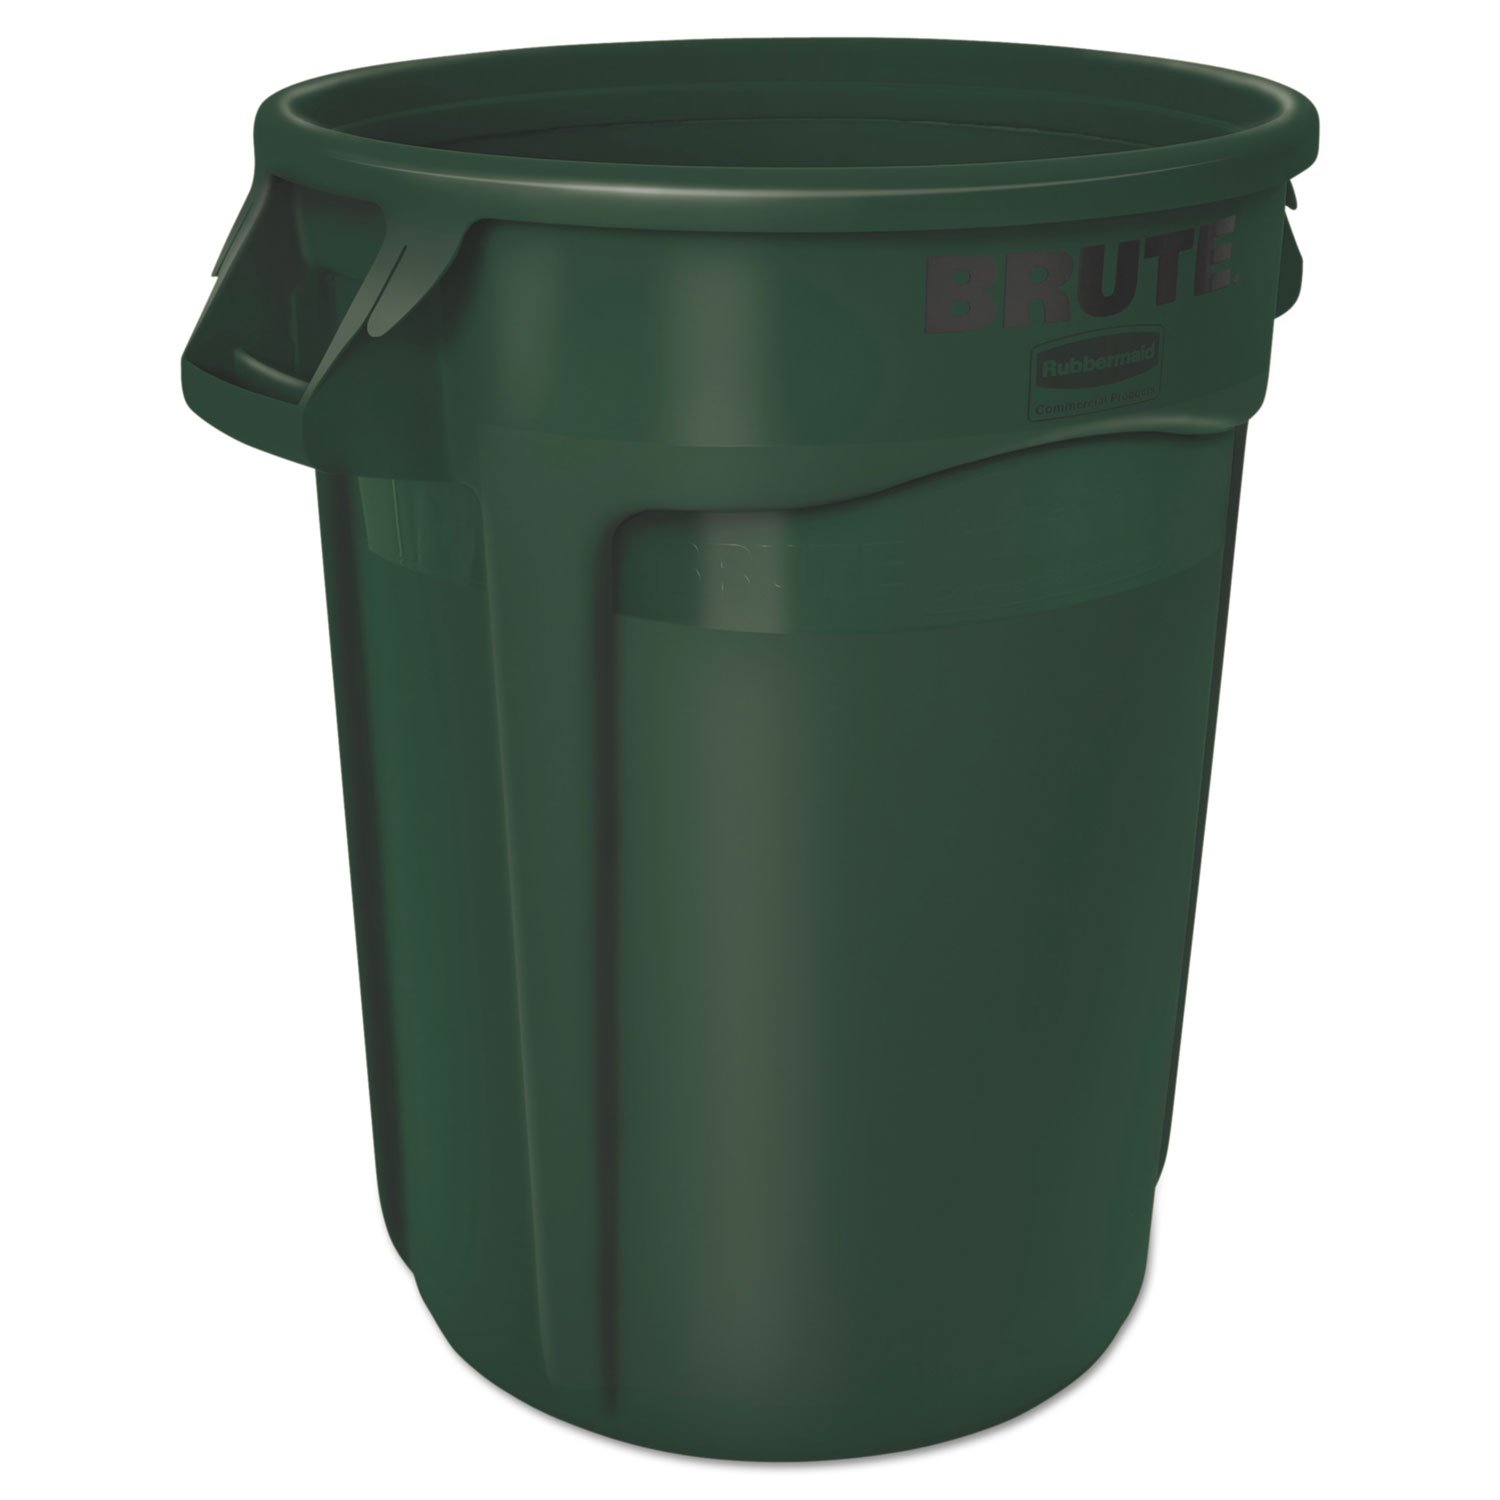 Rubbermaid Commercial - Round Brute Container, Plastic, 10 Gal, Dark Green, 6/Carton